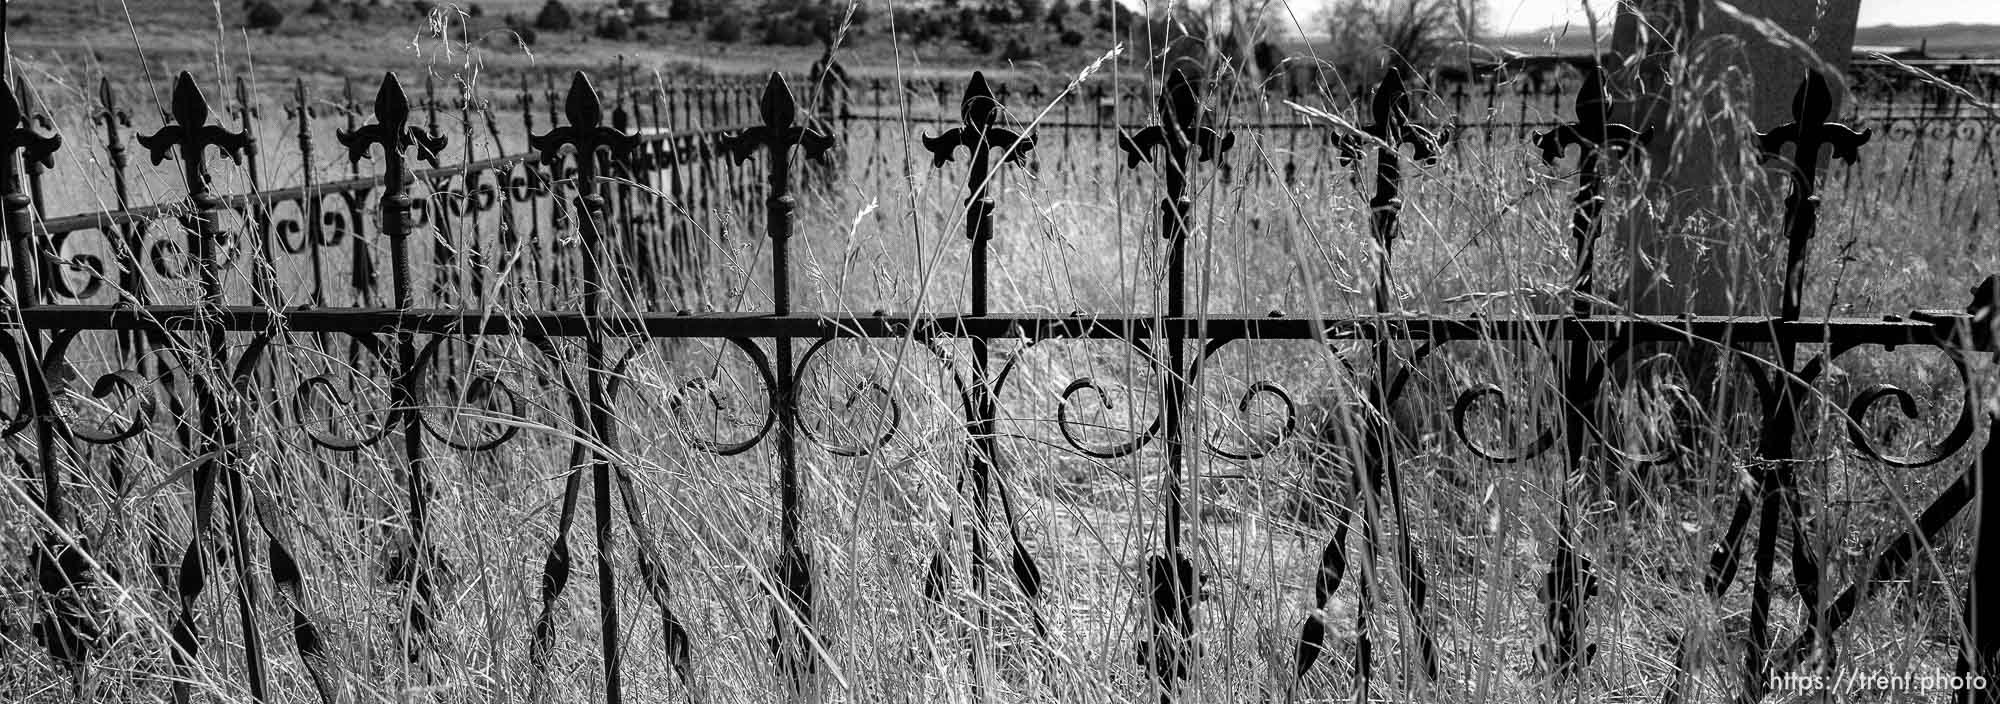 Iron fence in Eureka graveyard